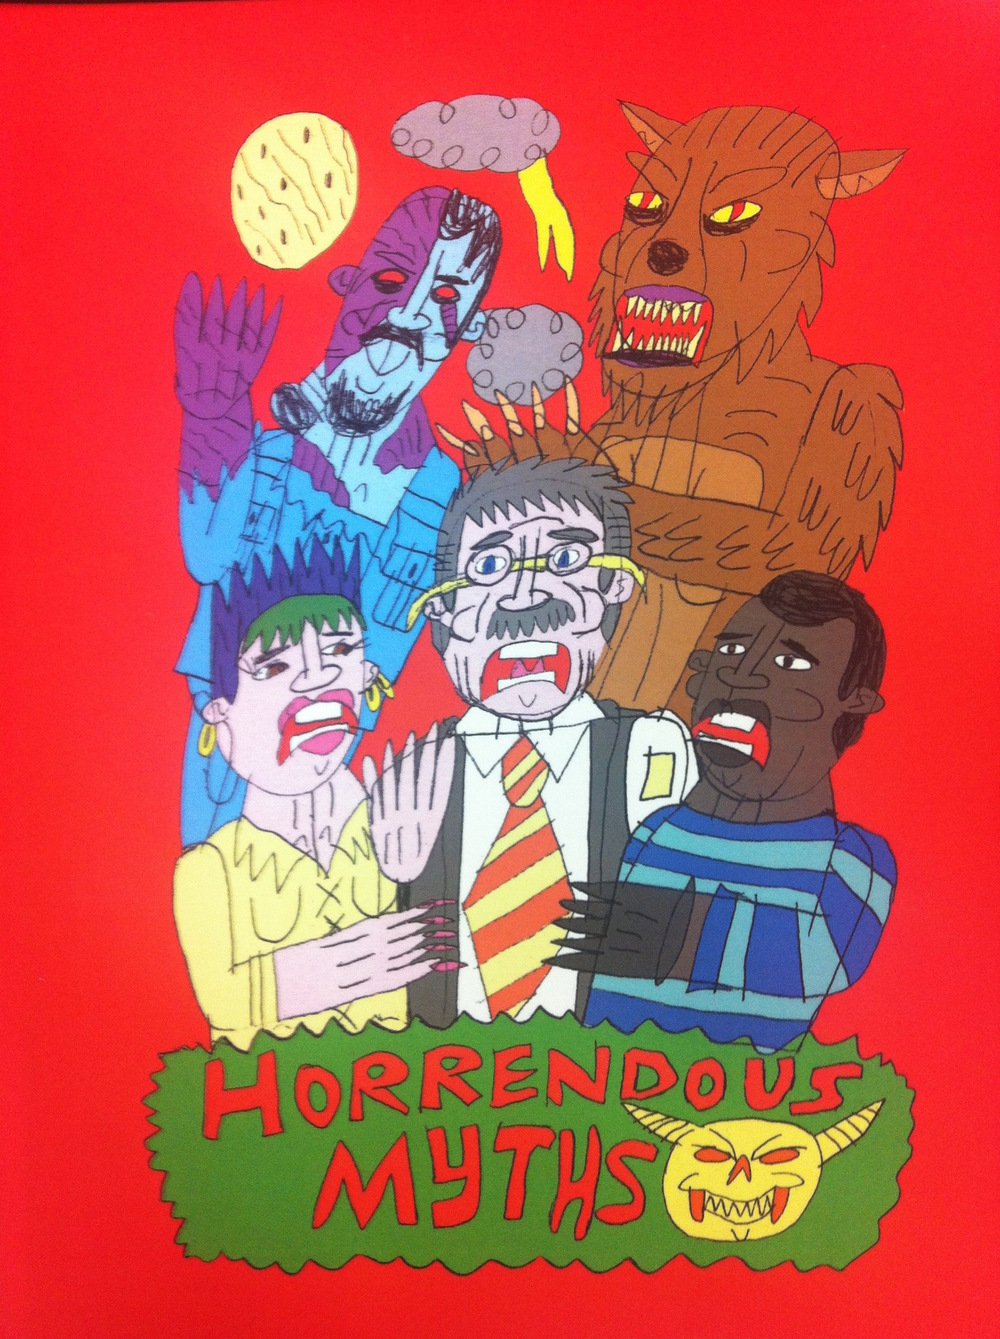 Greg Sindel's graphic novel, Horrendous Myths, 2015, featured for sale at Sydney Contemporary 2015.